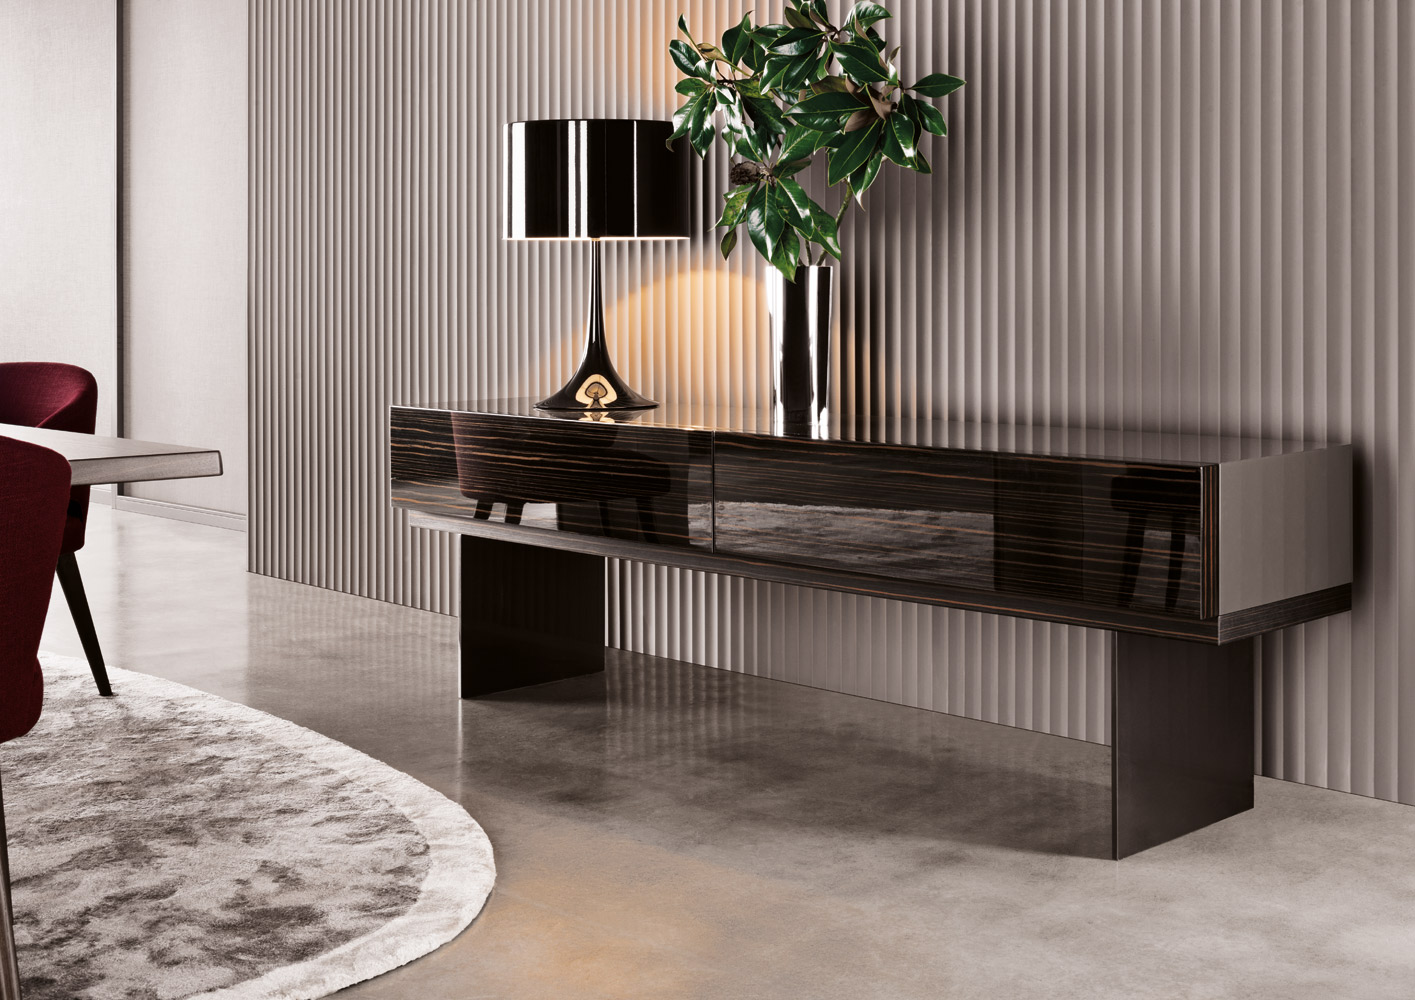 Lang andante lifestyle storeandante lifestyle store for Sideboard 3m lang